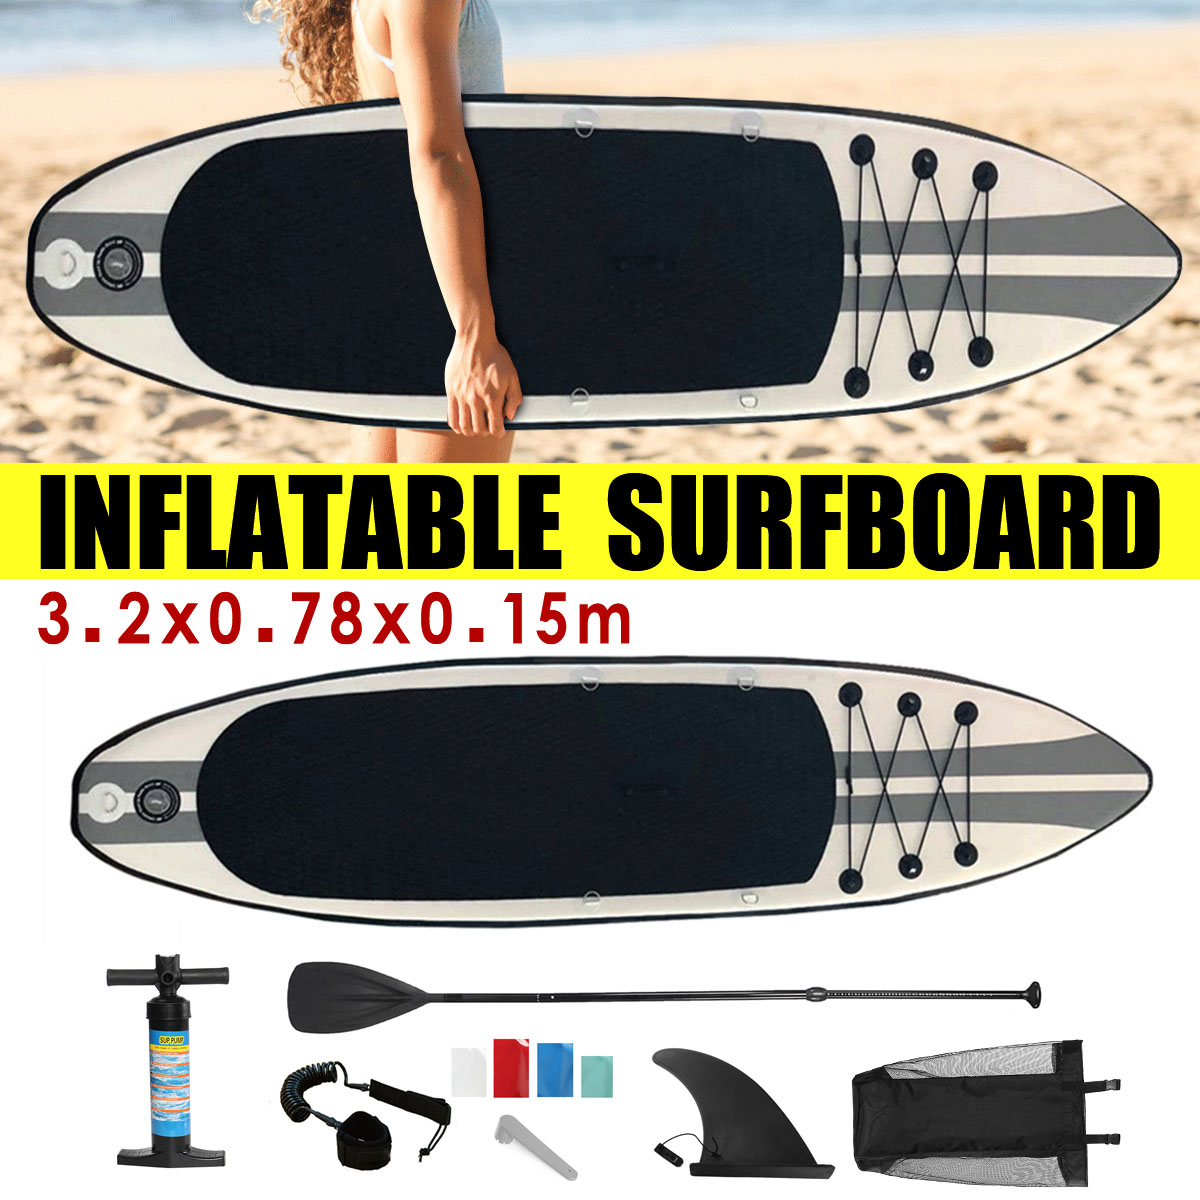 320x78x15cm Inflatable Surfboard 2019 Surfboard Stand Up Paddle Surfing Board Water Sport Sup Board + Pump Safety Rope Tools Kit320x78x15cm Inflatable Surfboard 2019 Surfboard Stand Up Paddle Surfing Board Water Sport Sup Board + Pump Safety Rope Tools Kit